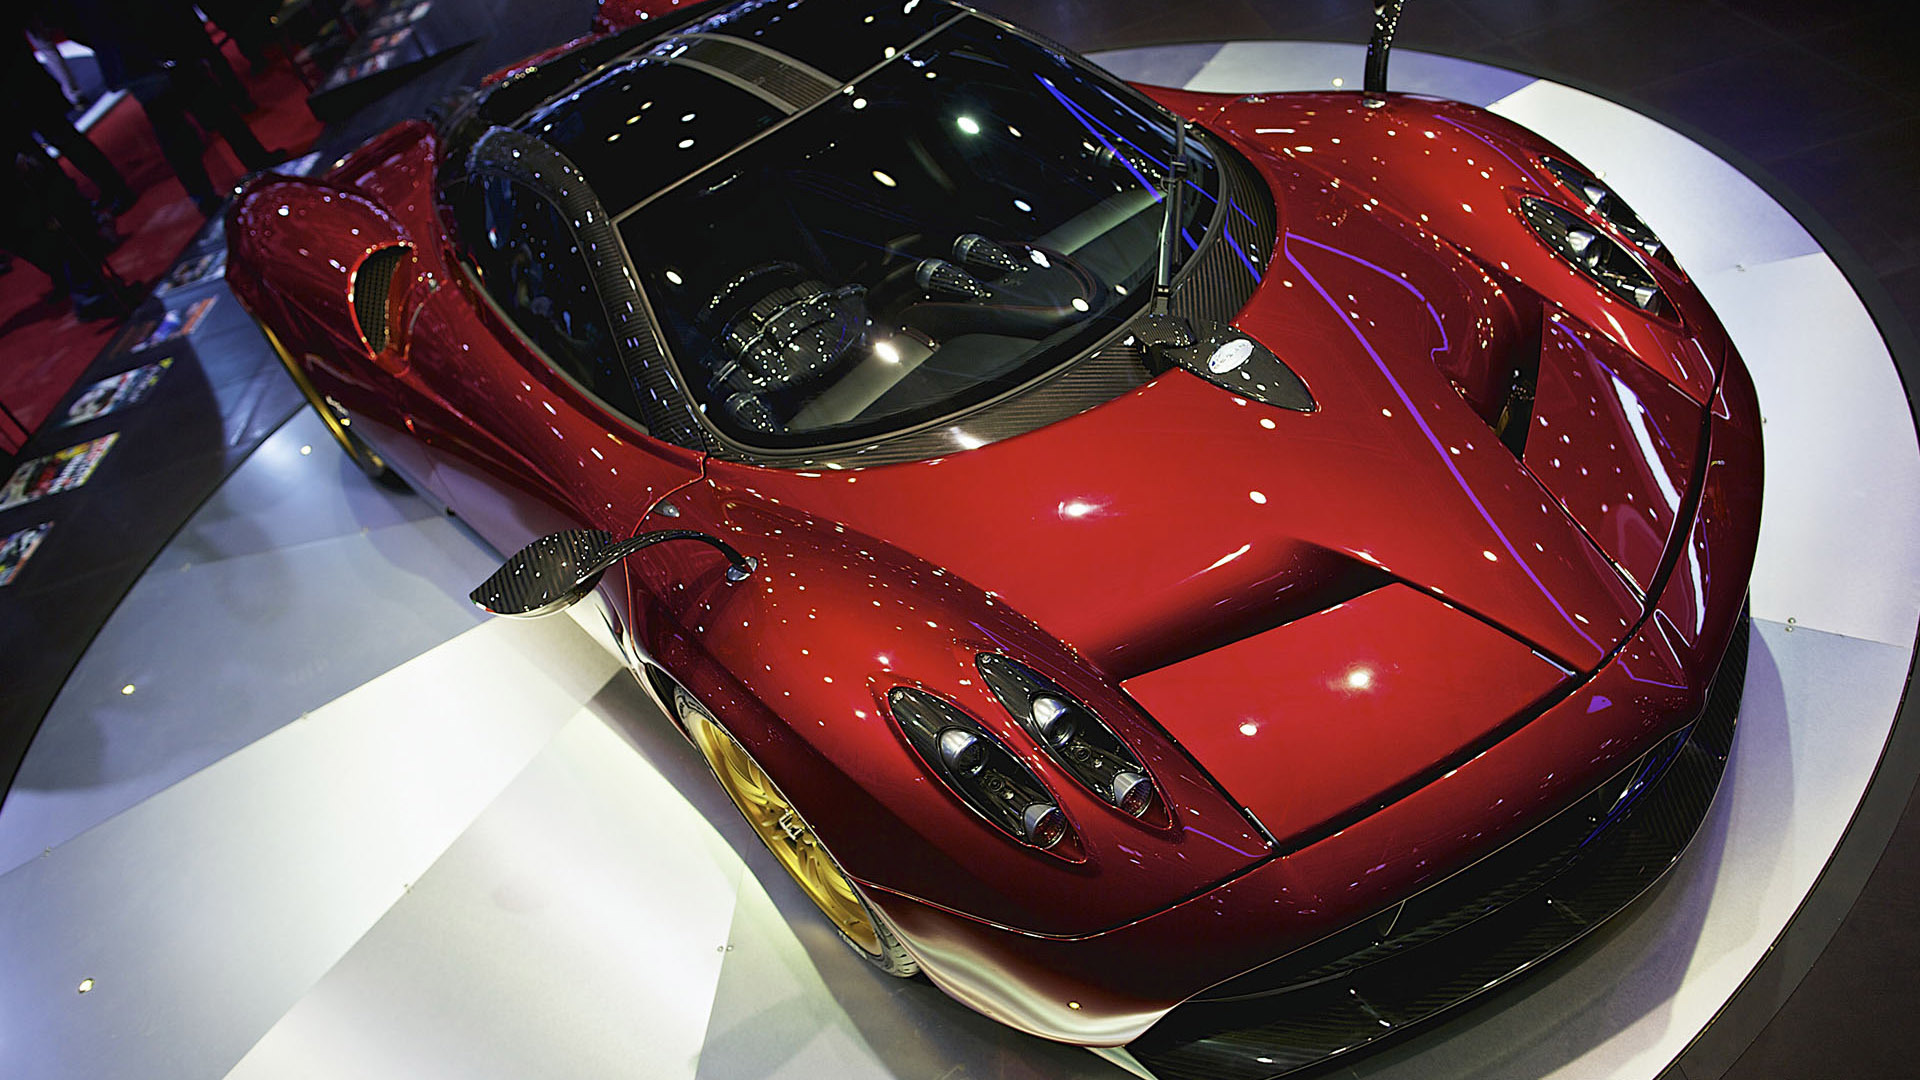 Red Pagani Huayra HD wallpaper | HD Latest Wallpapers